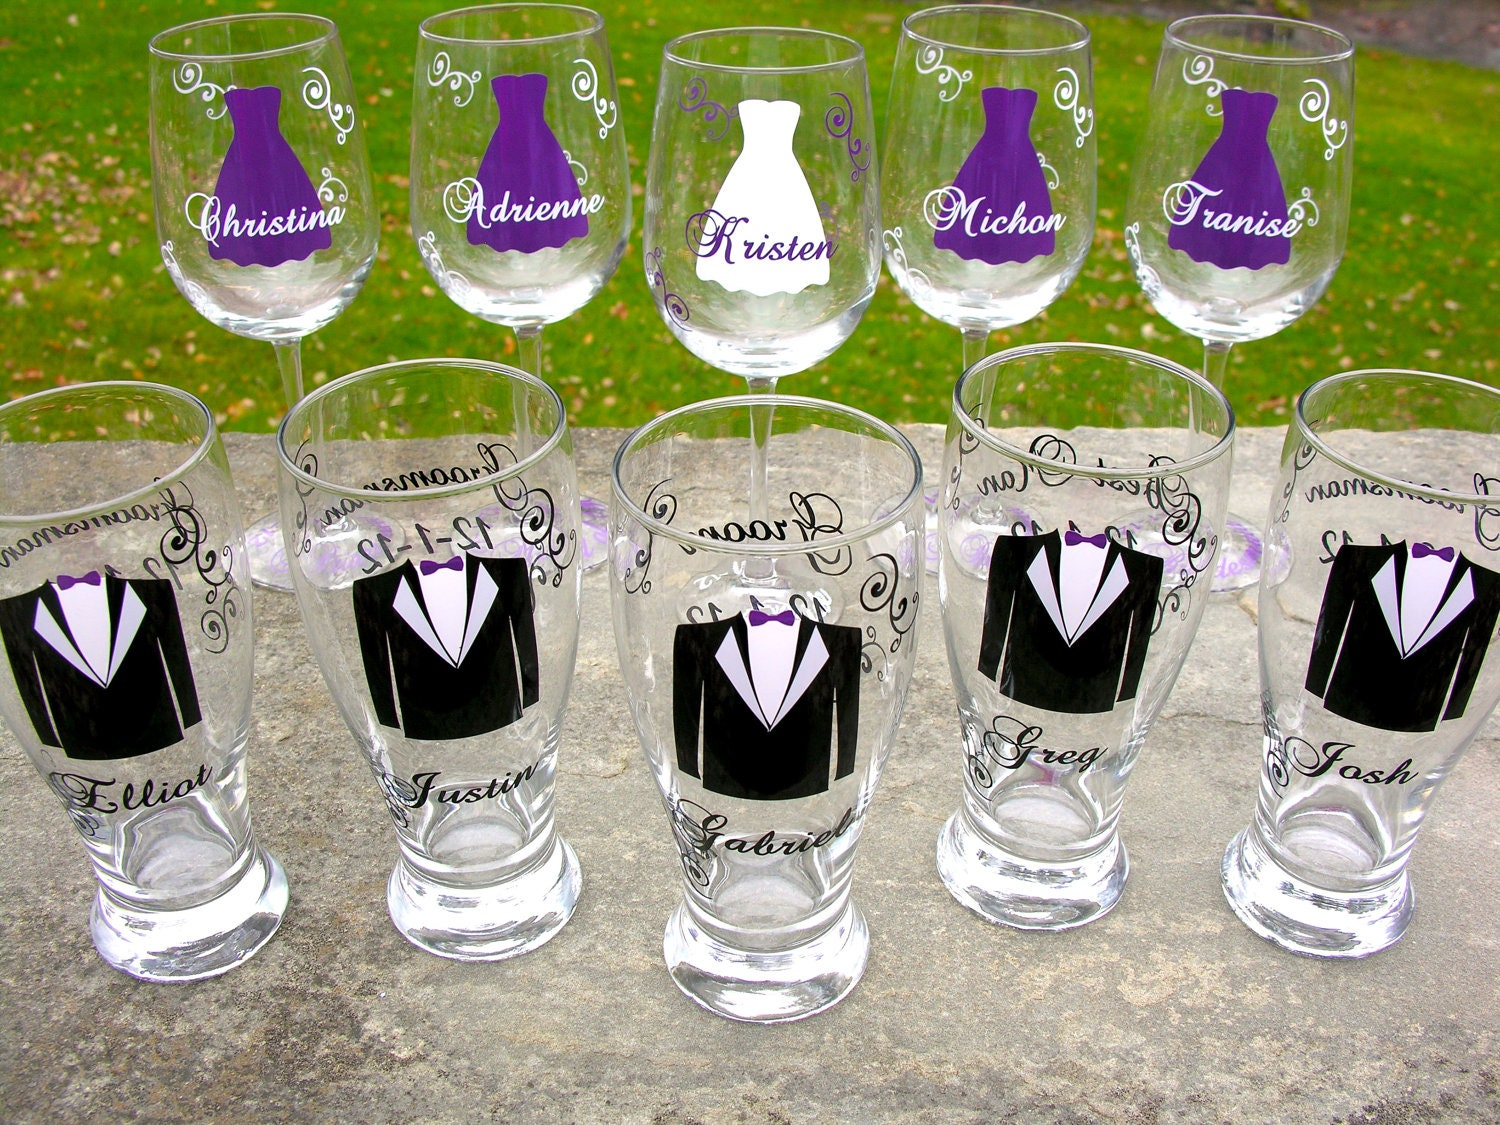 Wedding party glasses wine glasses and beer pilsner glasses.